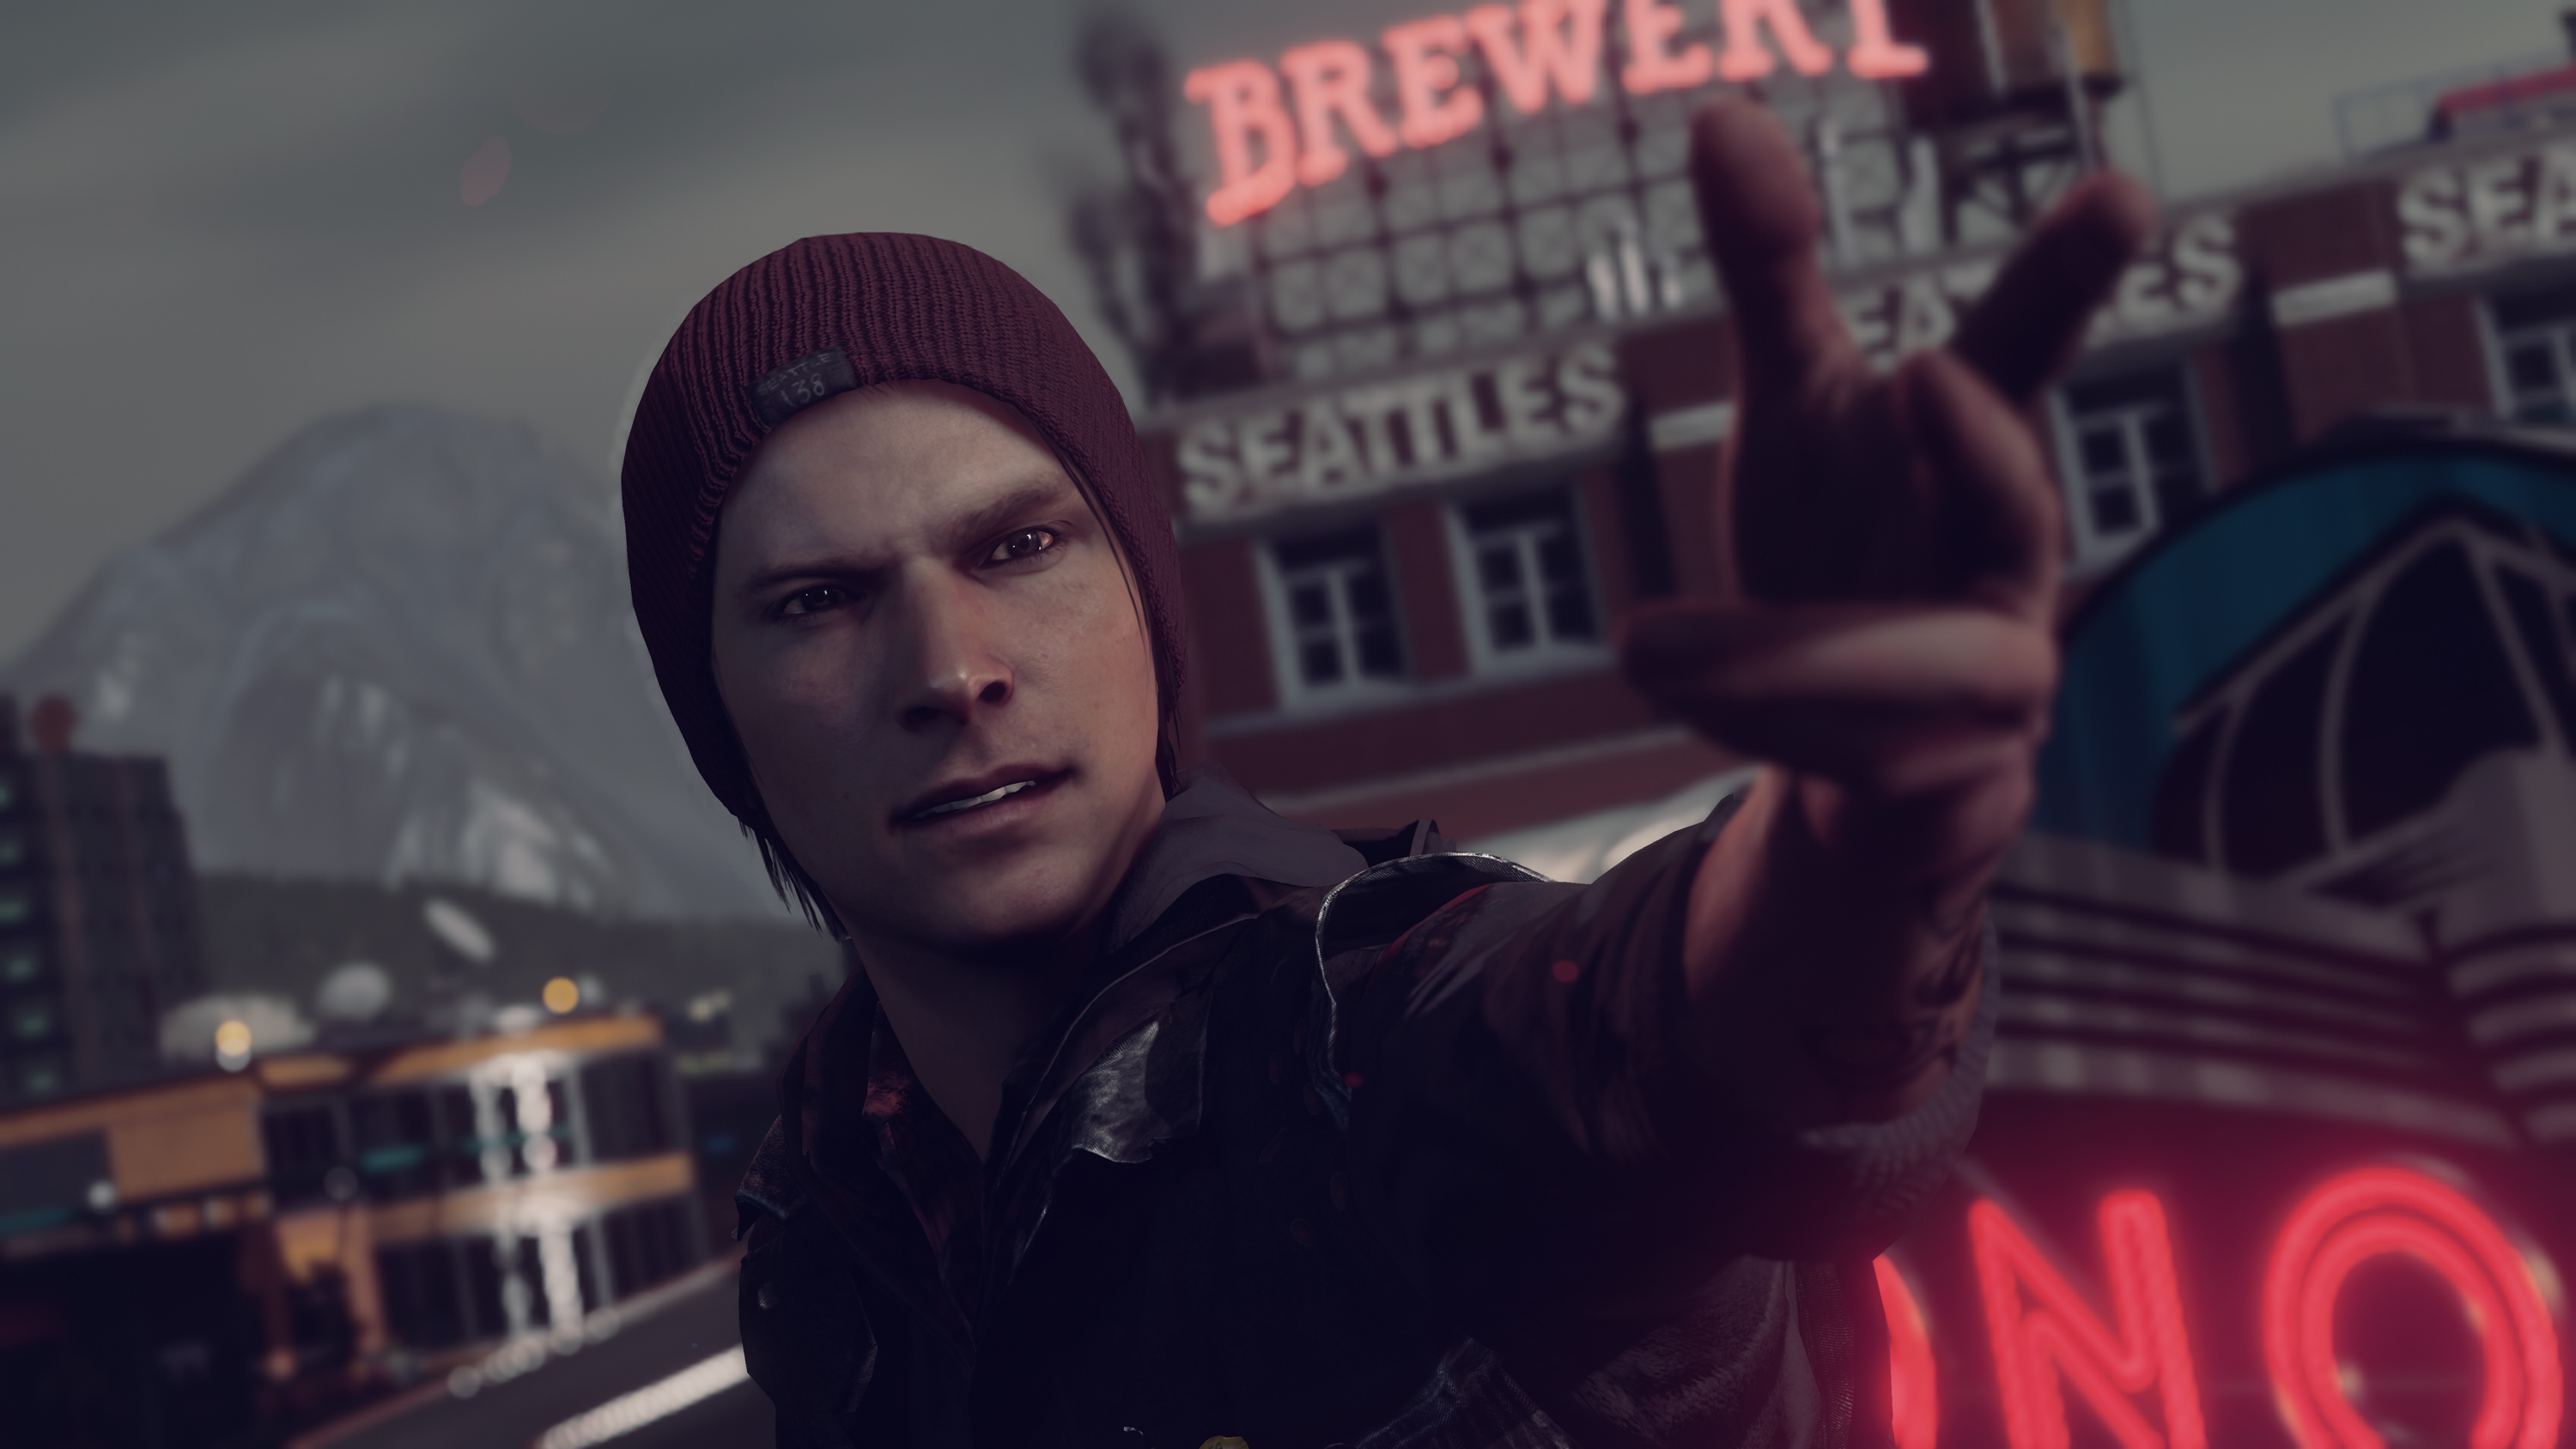 infamous second son wallpaper A1